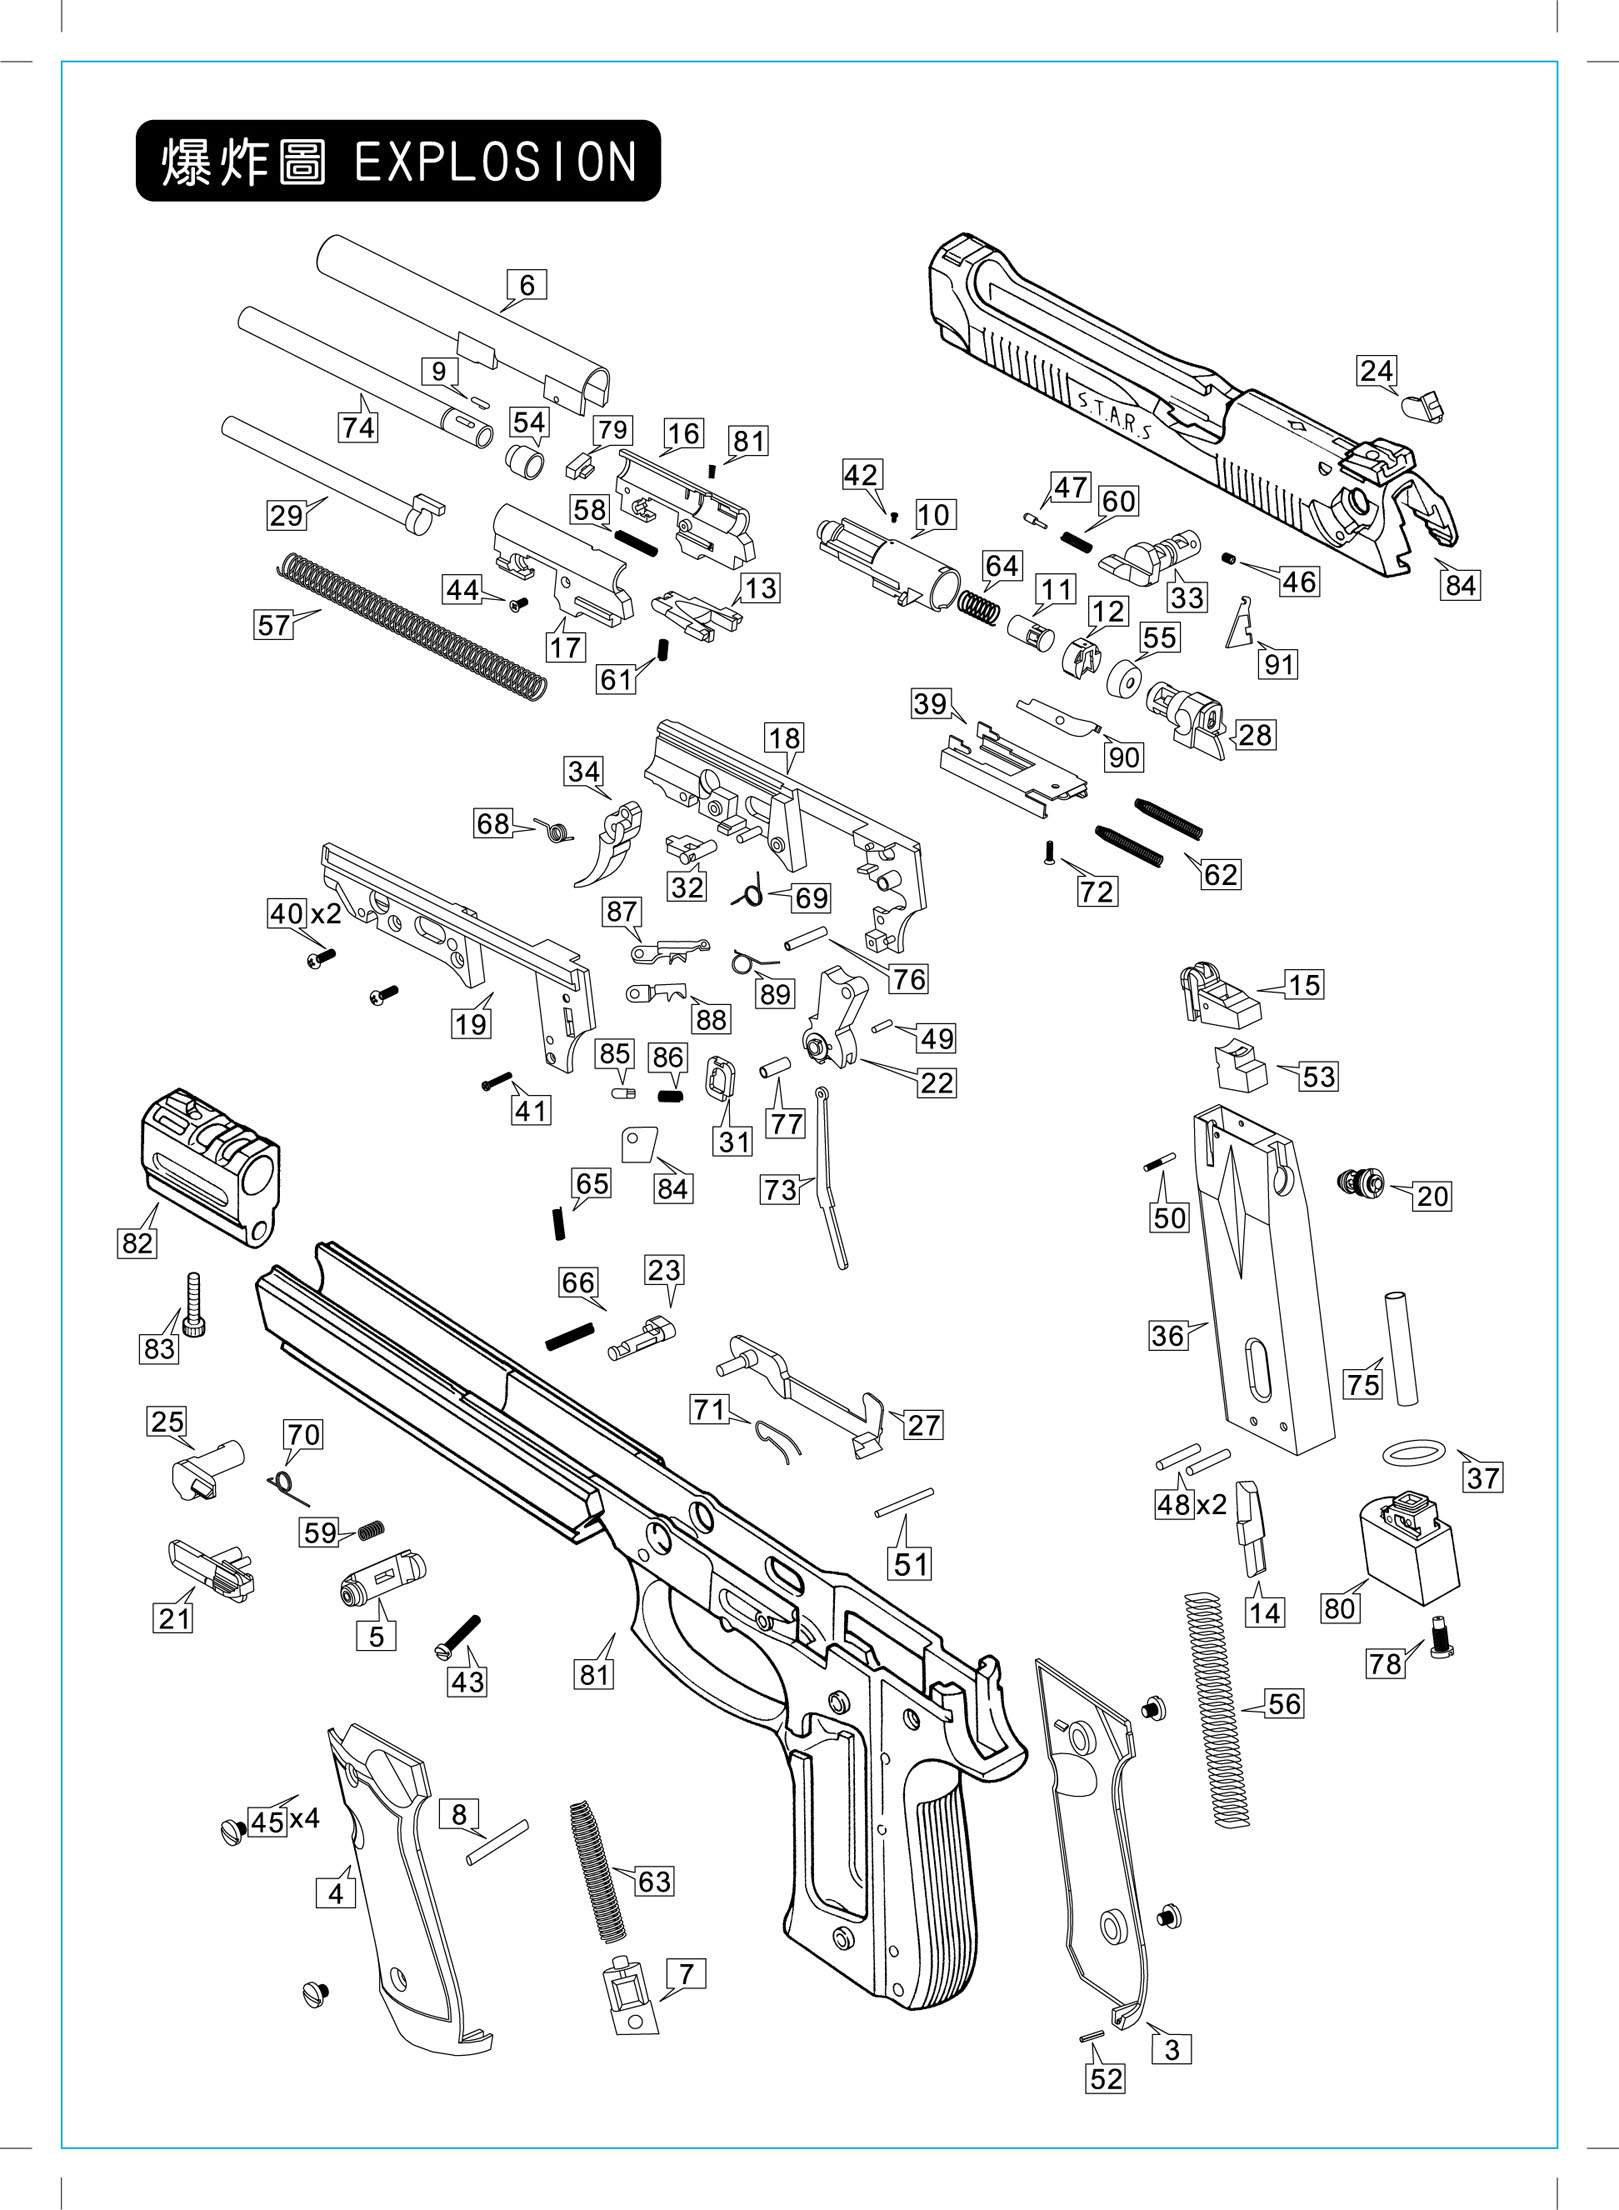 Exploded View Kimber 1911 Pistols Diagram On Para Ordnance